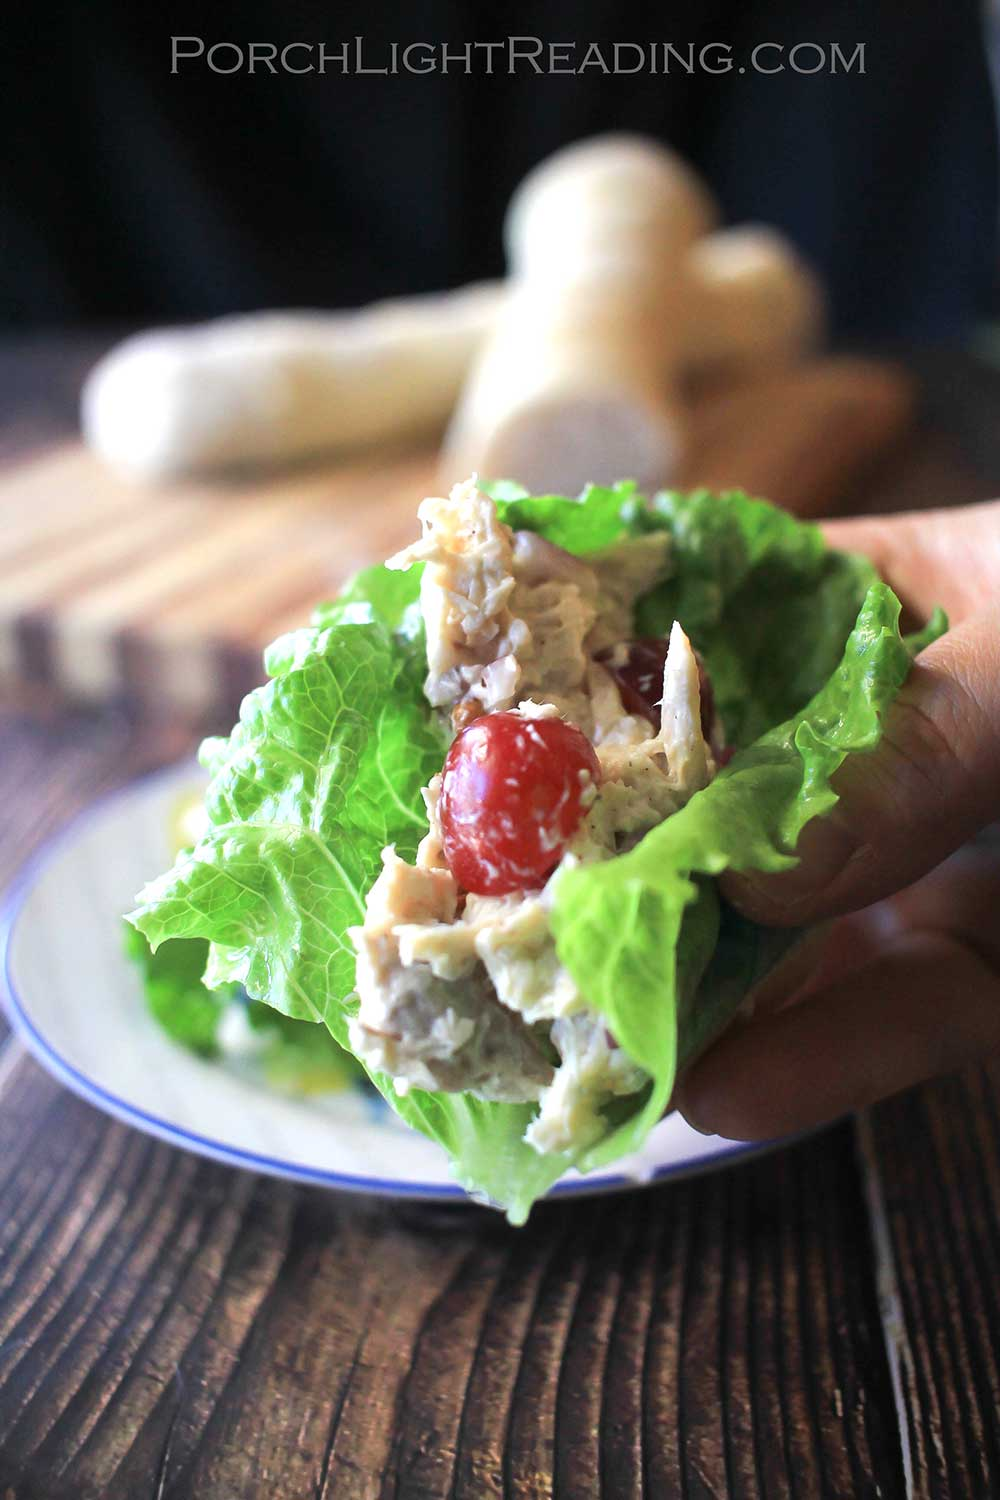 Chicken salad lettuce wrap with homemade French bread on a rustic cutting board.